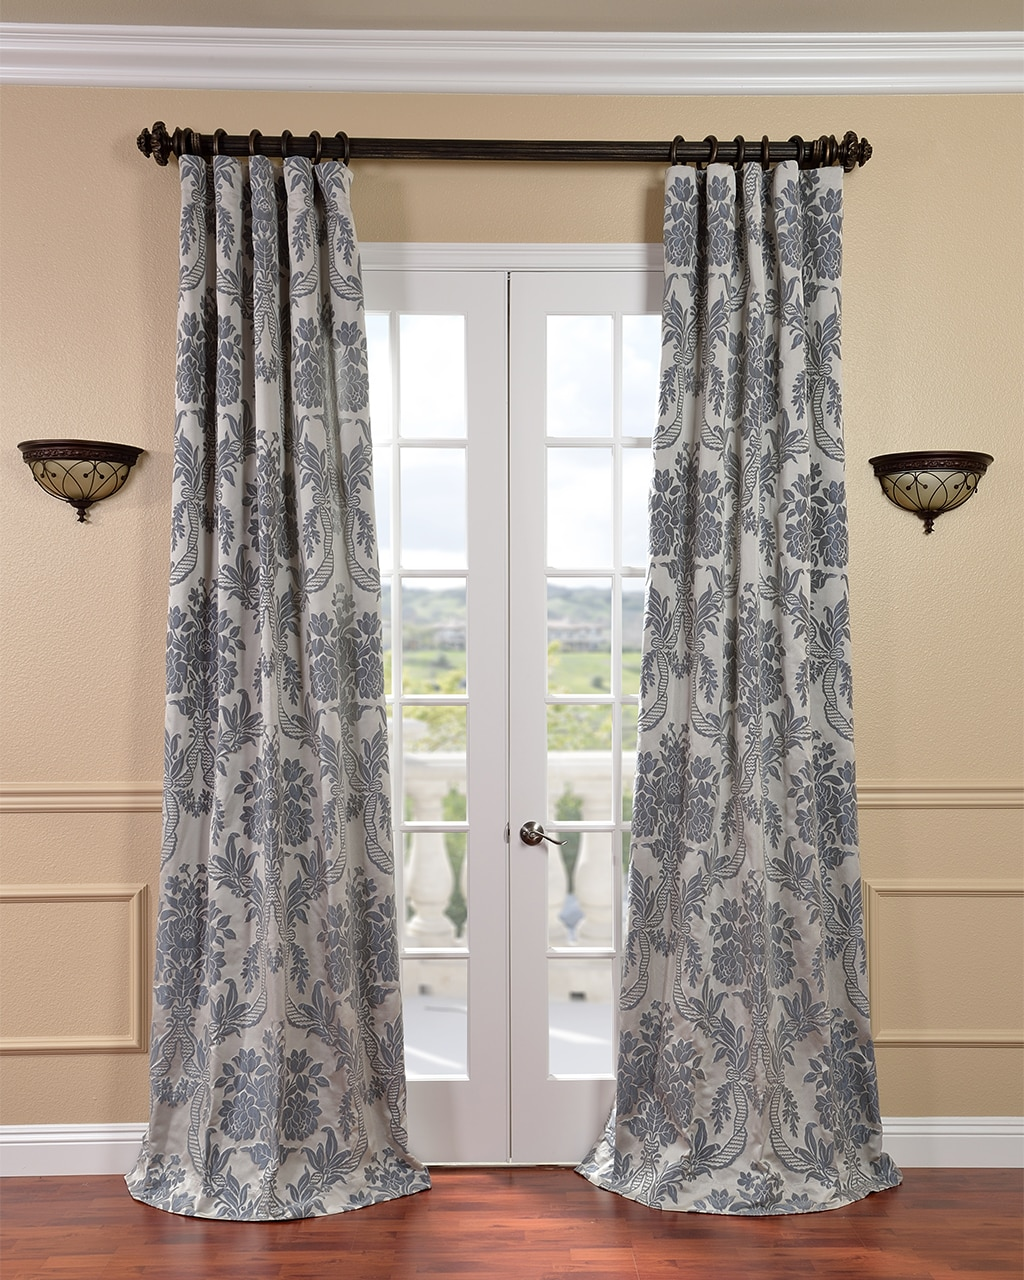 120 Inches Curtains Drapes